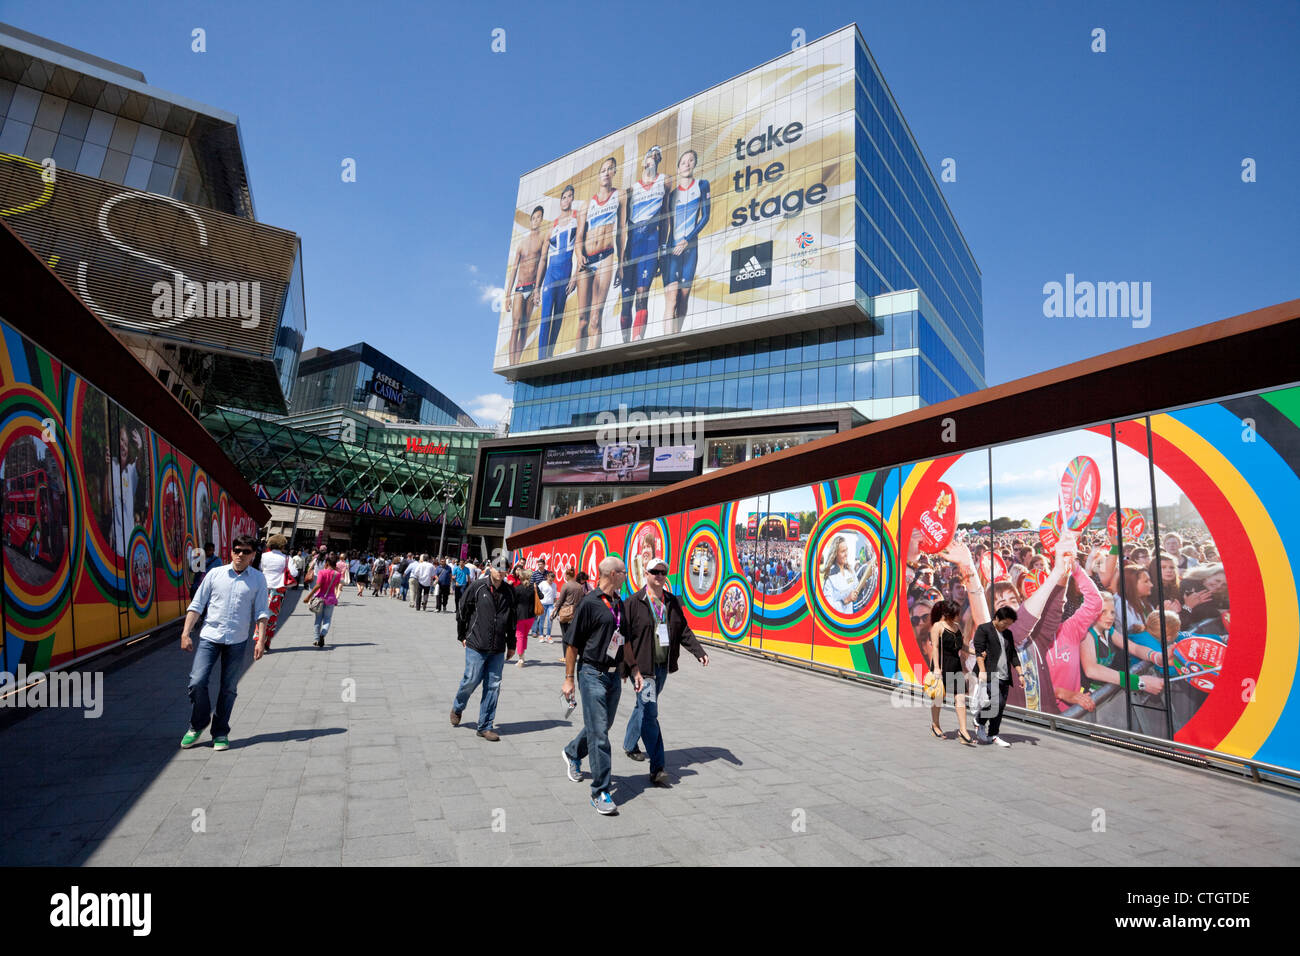 Westfield Stratford City Shopping Centre and footbridge, displaying colourful Olympic Games advertisement, Stratford, - Stock Image